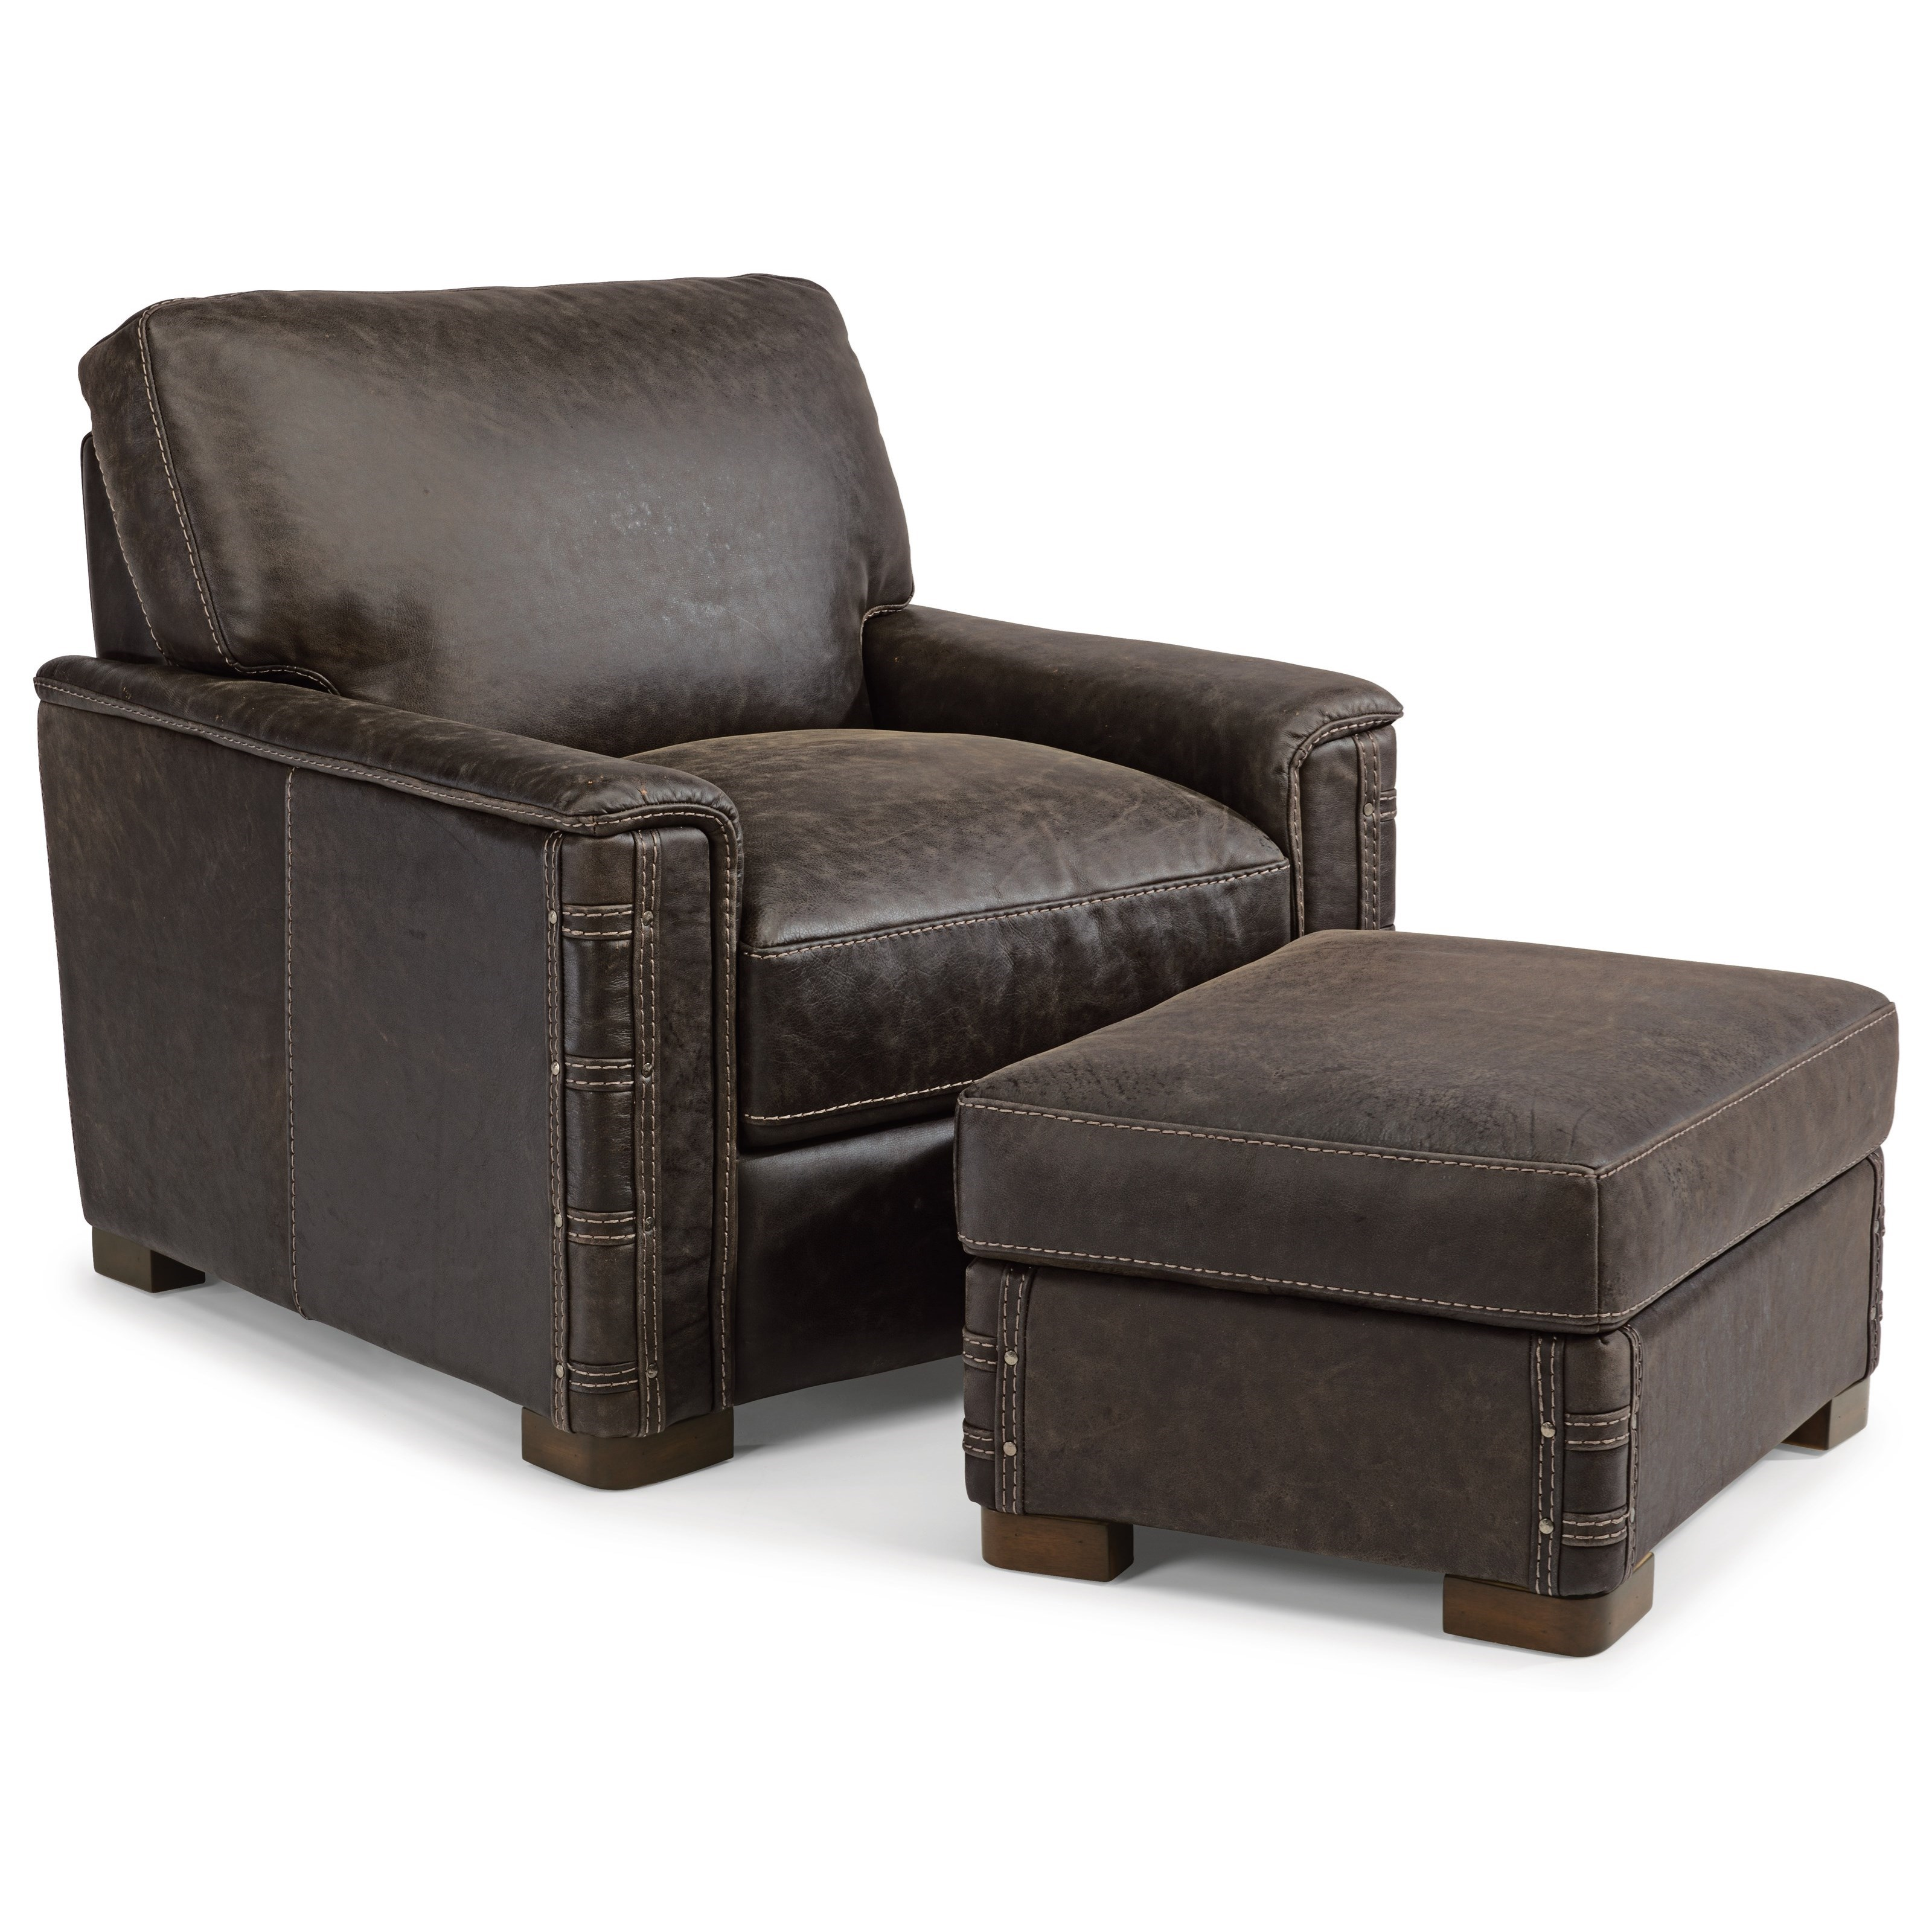 Leather Ottomans Set Of Three ~ Flexsteel latitudes lomax rustic leather chair and